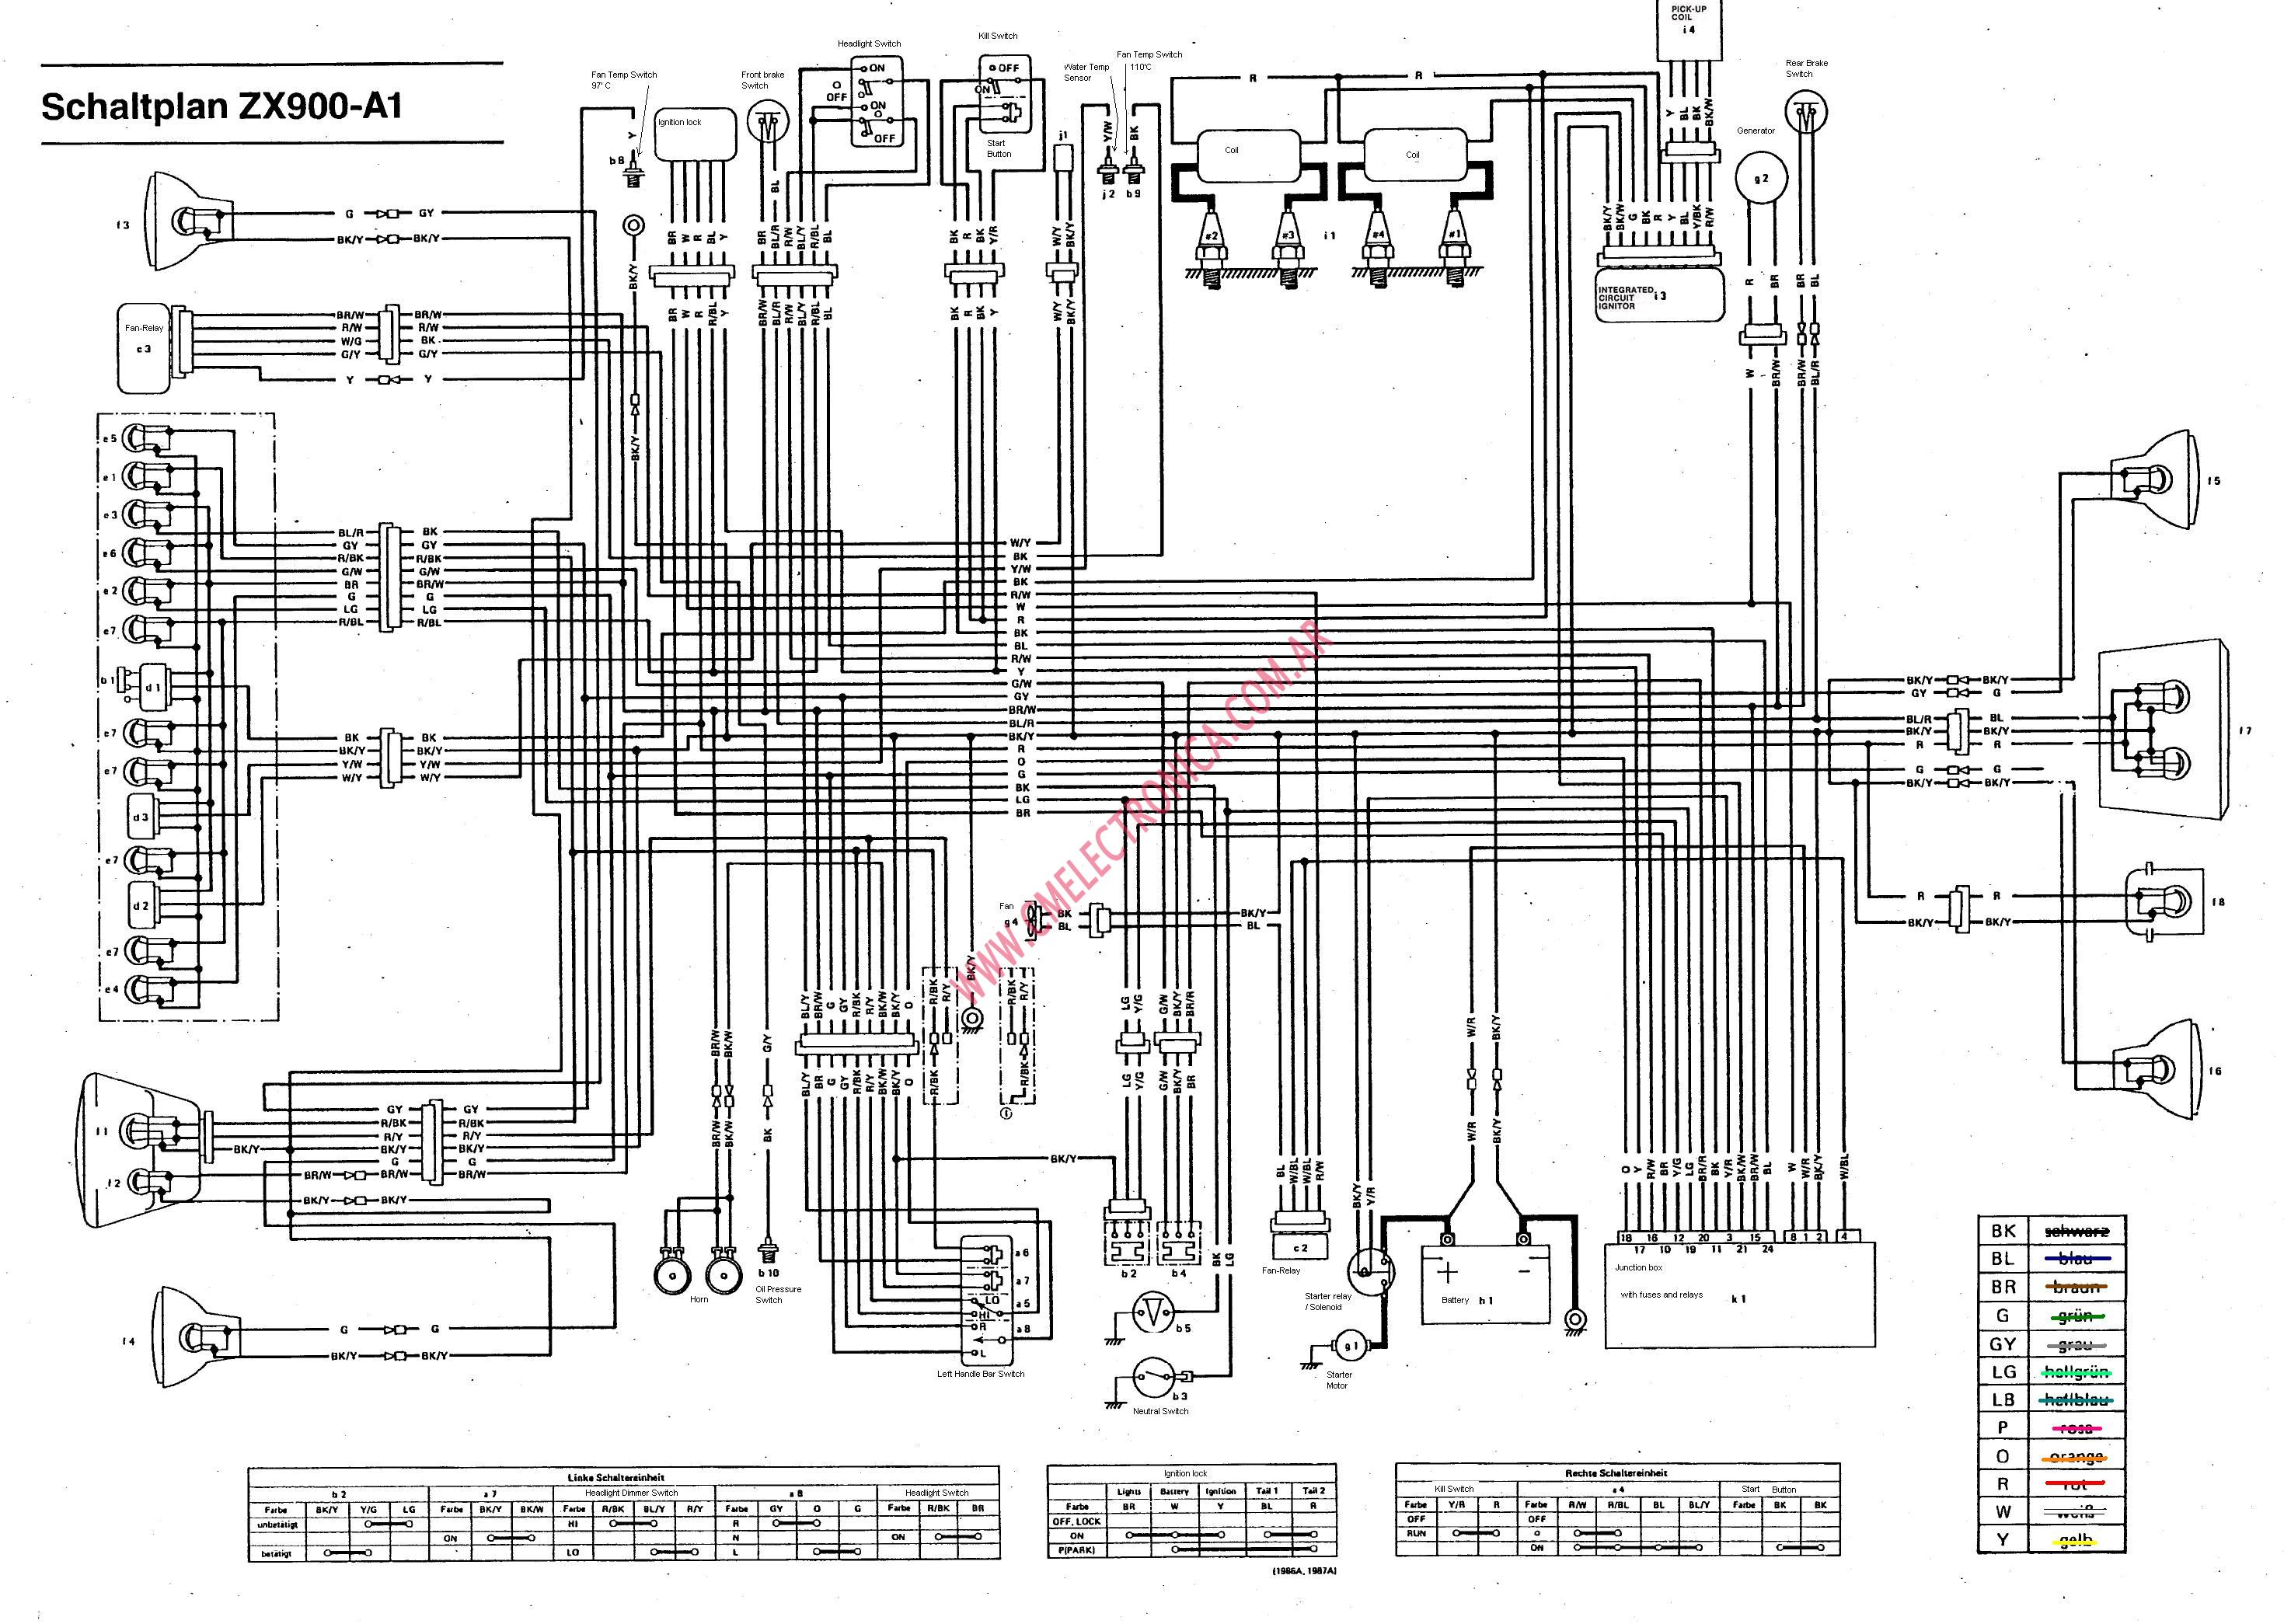 Kawasaki Zxi 750 Wiring Diagram List Of Schematic Circuit Jet Ski Diagrams Zxr750 And Schematics Rh Rivcas Org